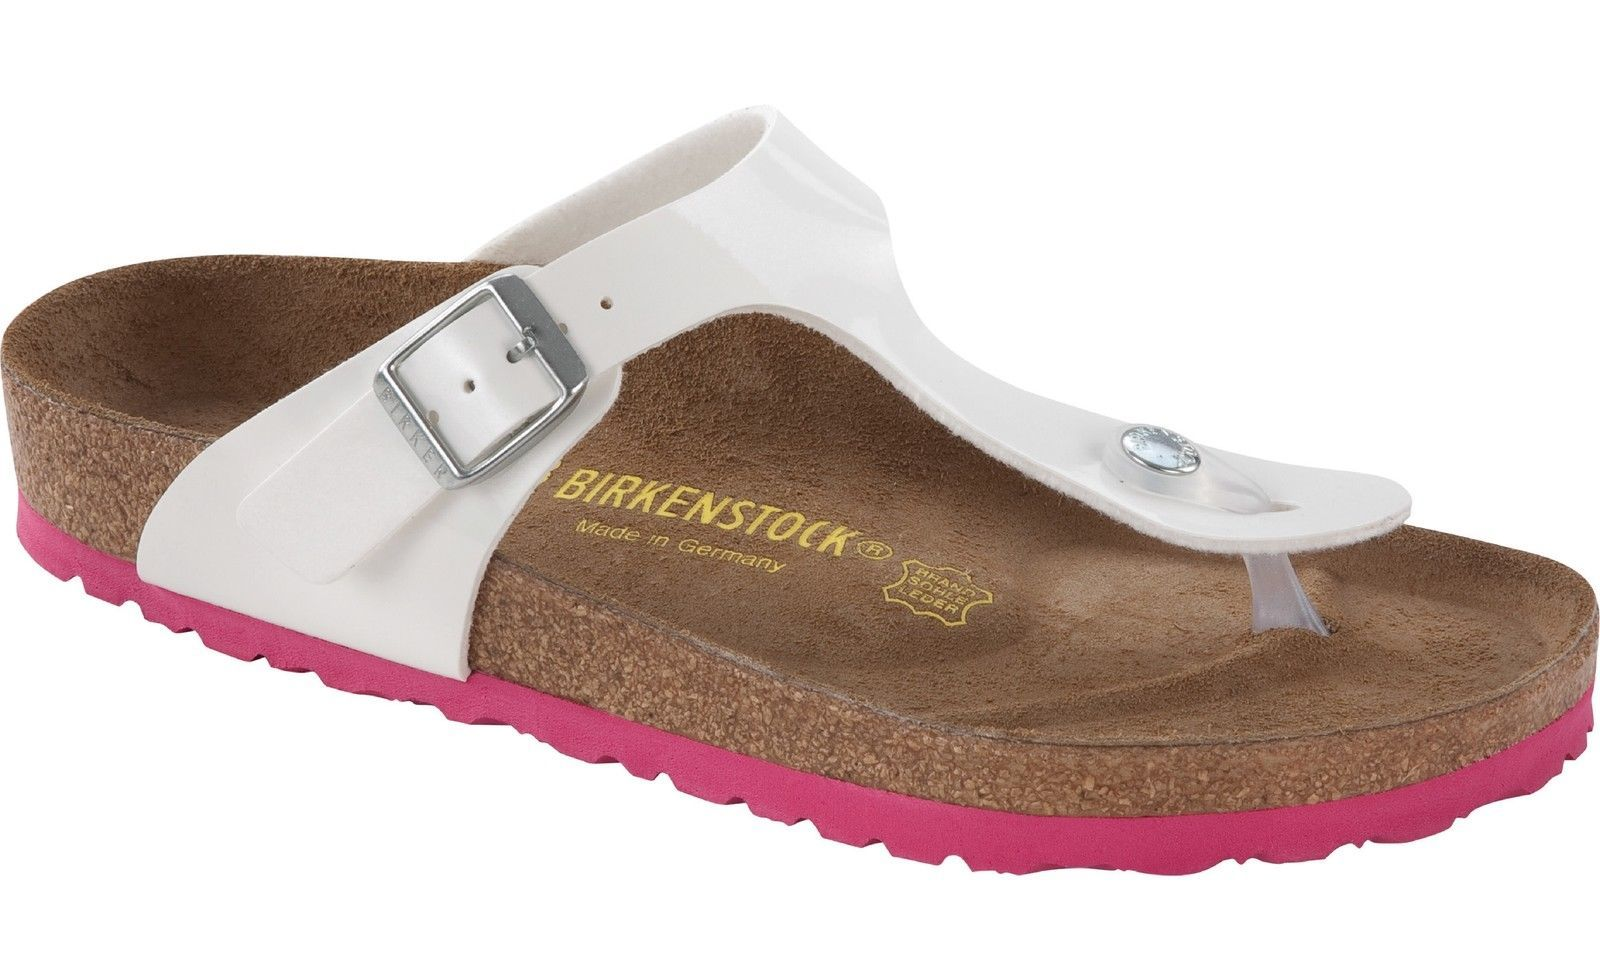 Zapatos negros formales Birkenstock Gizeh para mujer 94s0l4ty